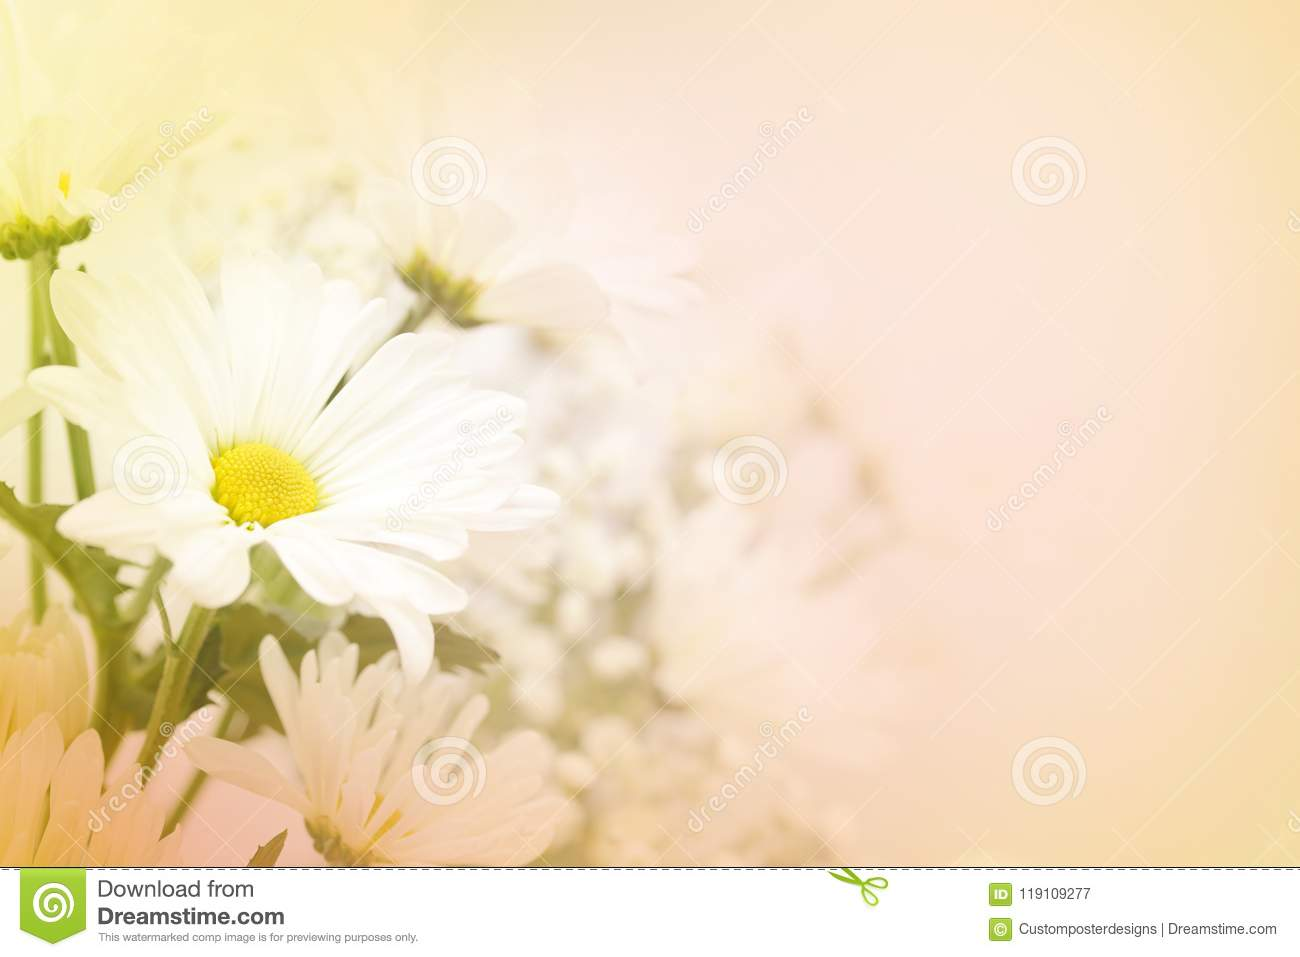 Download A White Daisy Flower On A Blurred Peach Background. Stock Image - Image of condolences, cheerful: 119109277